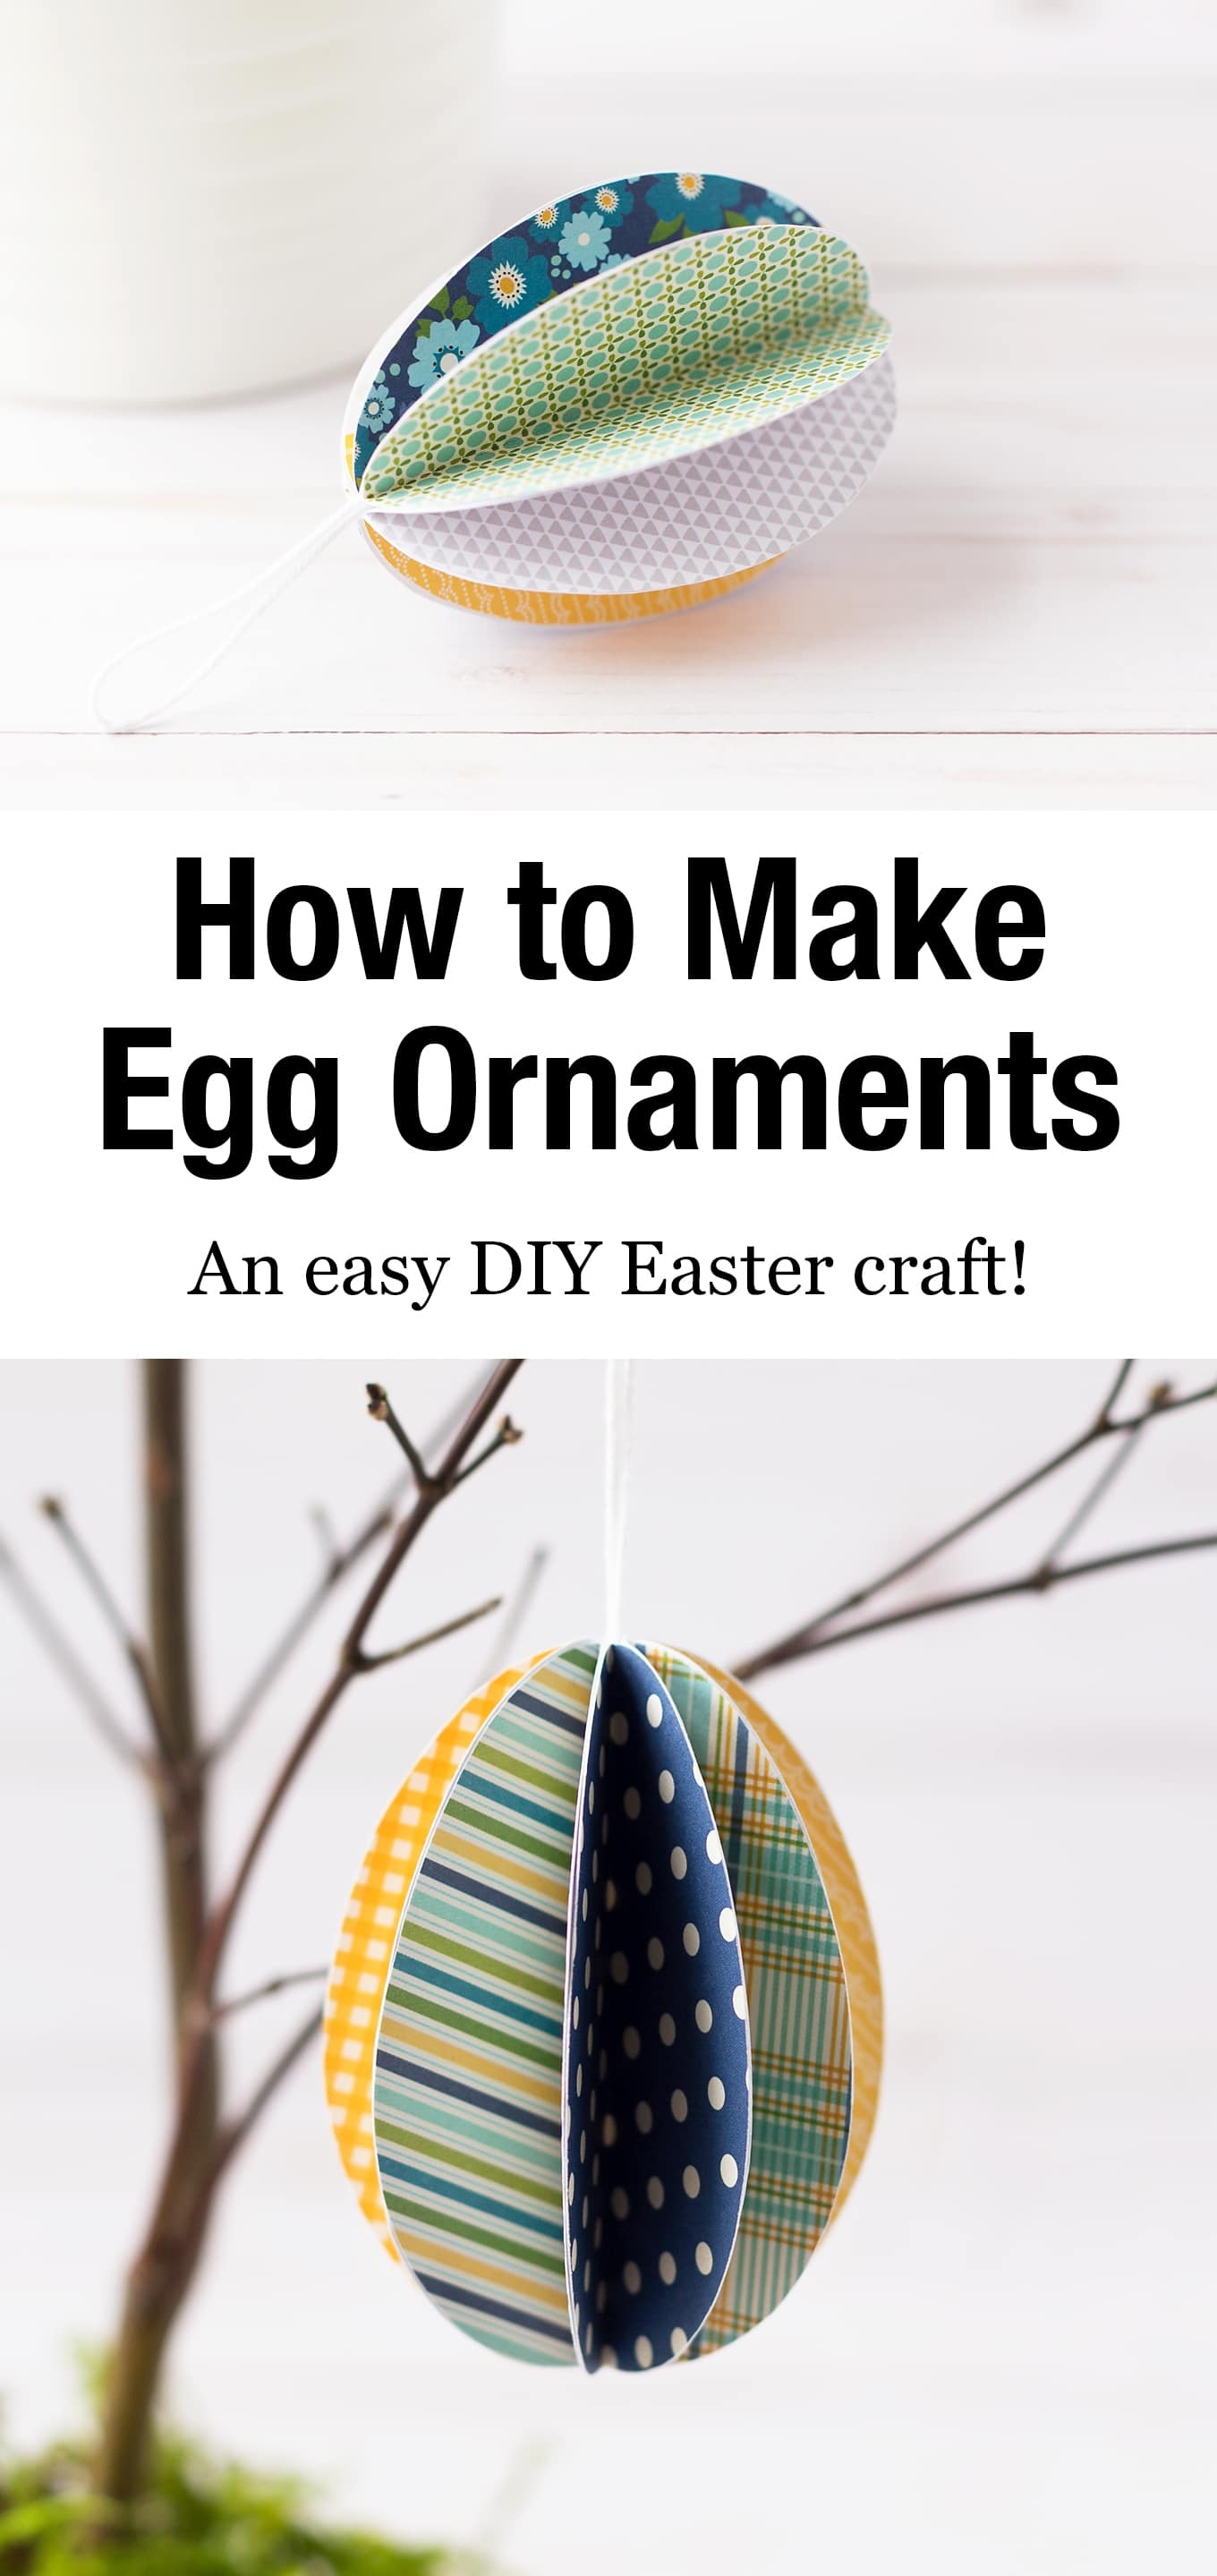 Use the free printable template to make beautiful 3D Paper Easter Egg Ornaments! It's the perfect Easter craft for kids of all ages! #eastereggornaments #papereggornaments #eastercraft #kidscrafts #3Dpapereggornaments via @firefliesandmudpies